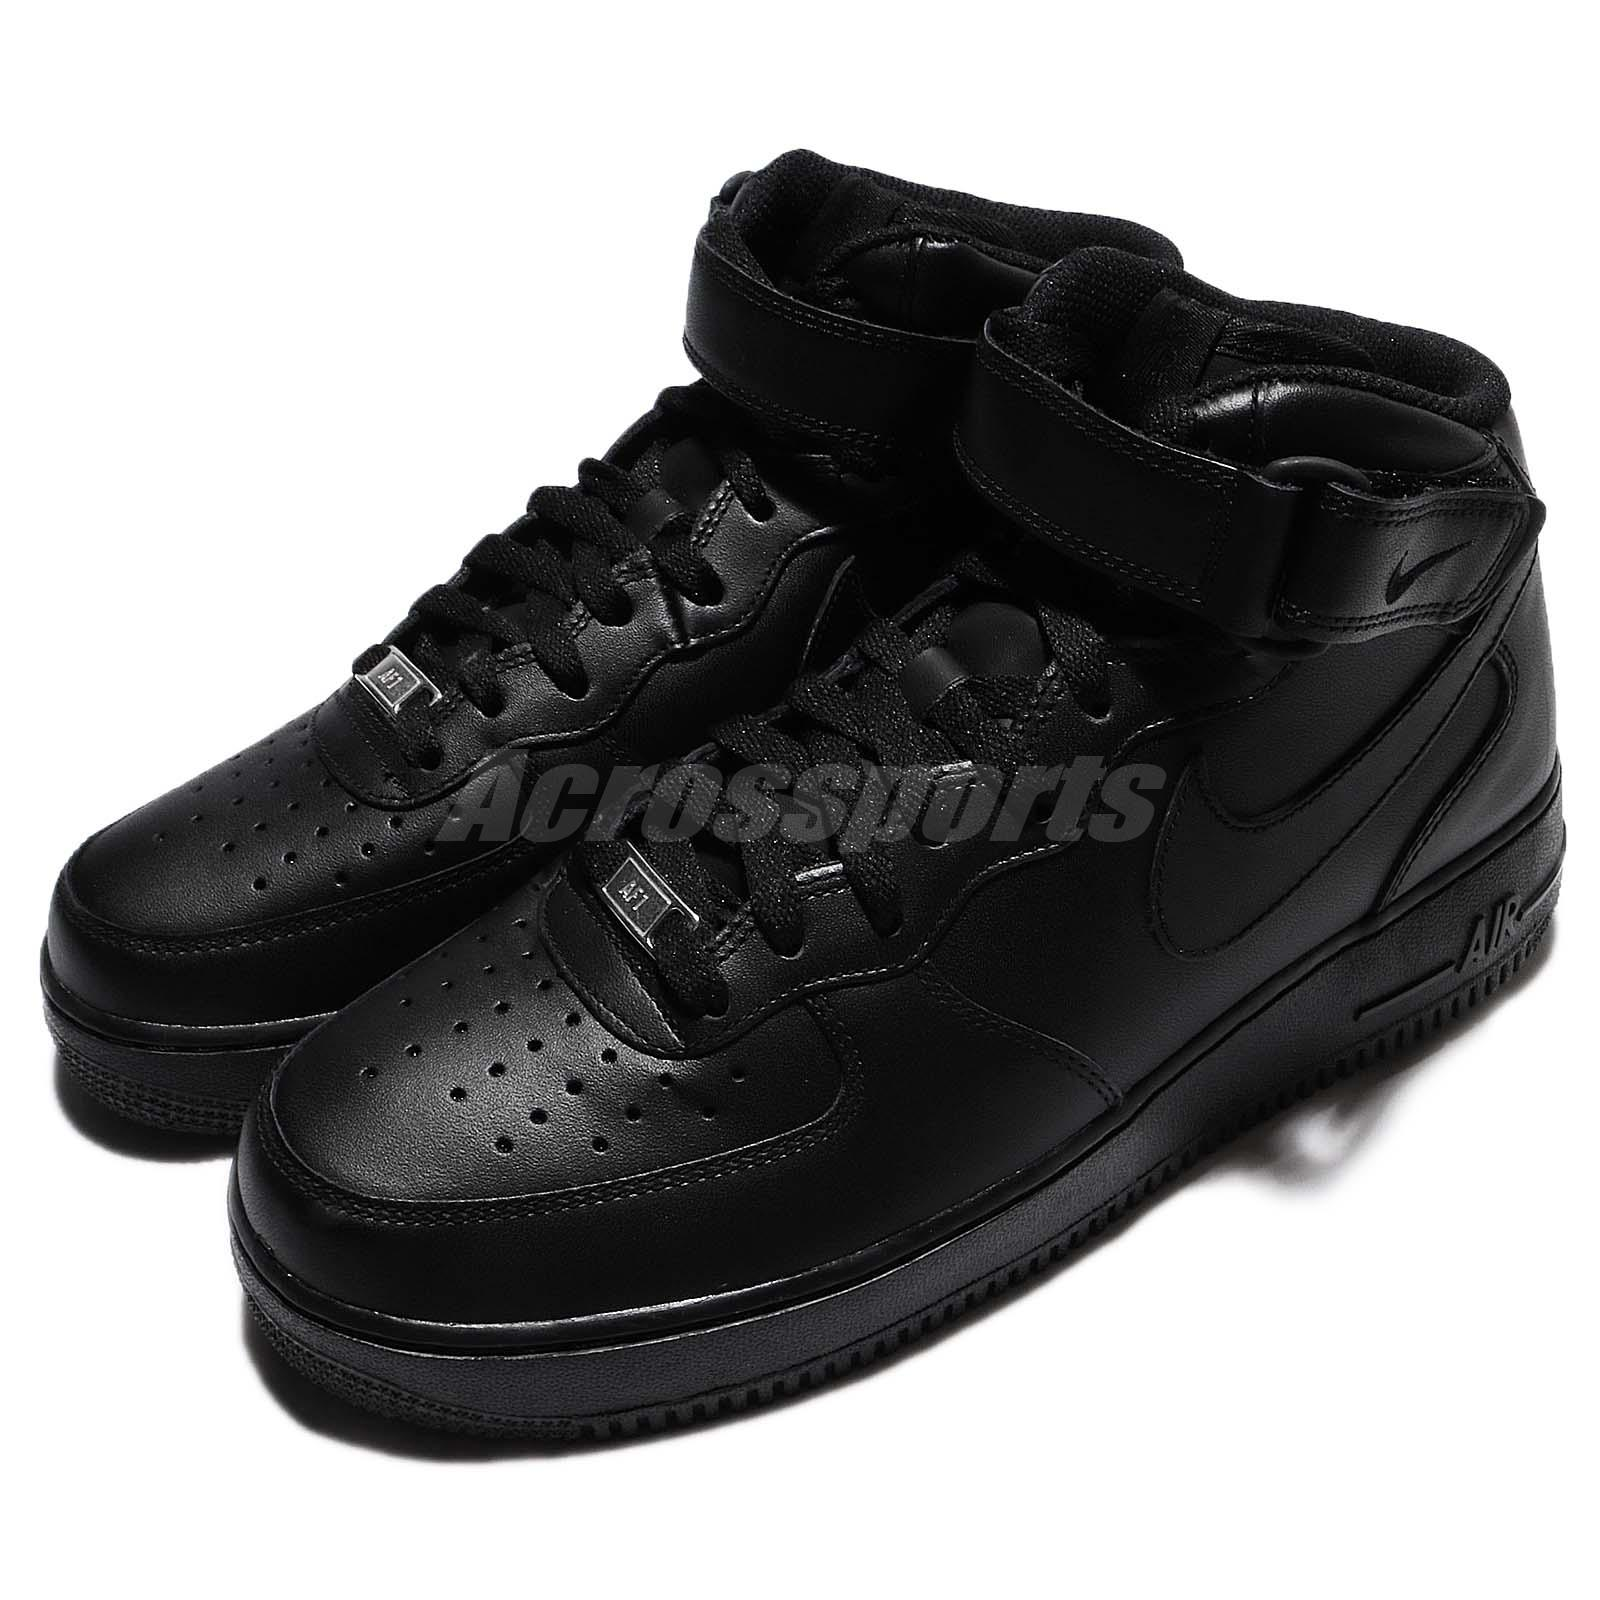 97d179f2f2f6 Details about Nike Air Force 1 Mid 07 Black Mens Classic AF1 Shoes Sneakers  315123-001